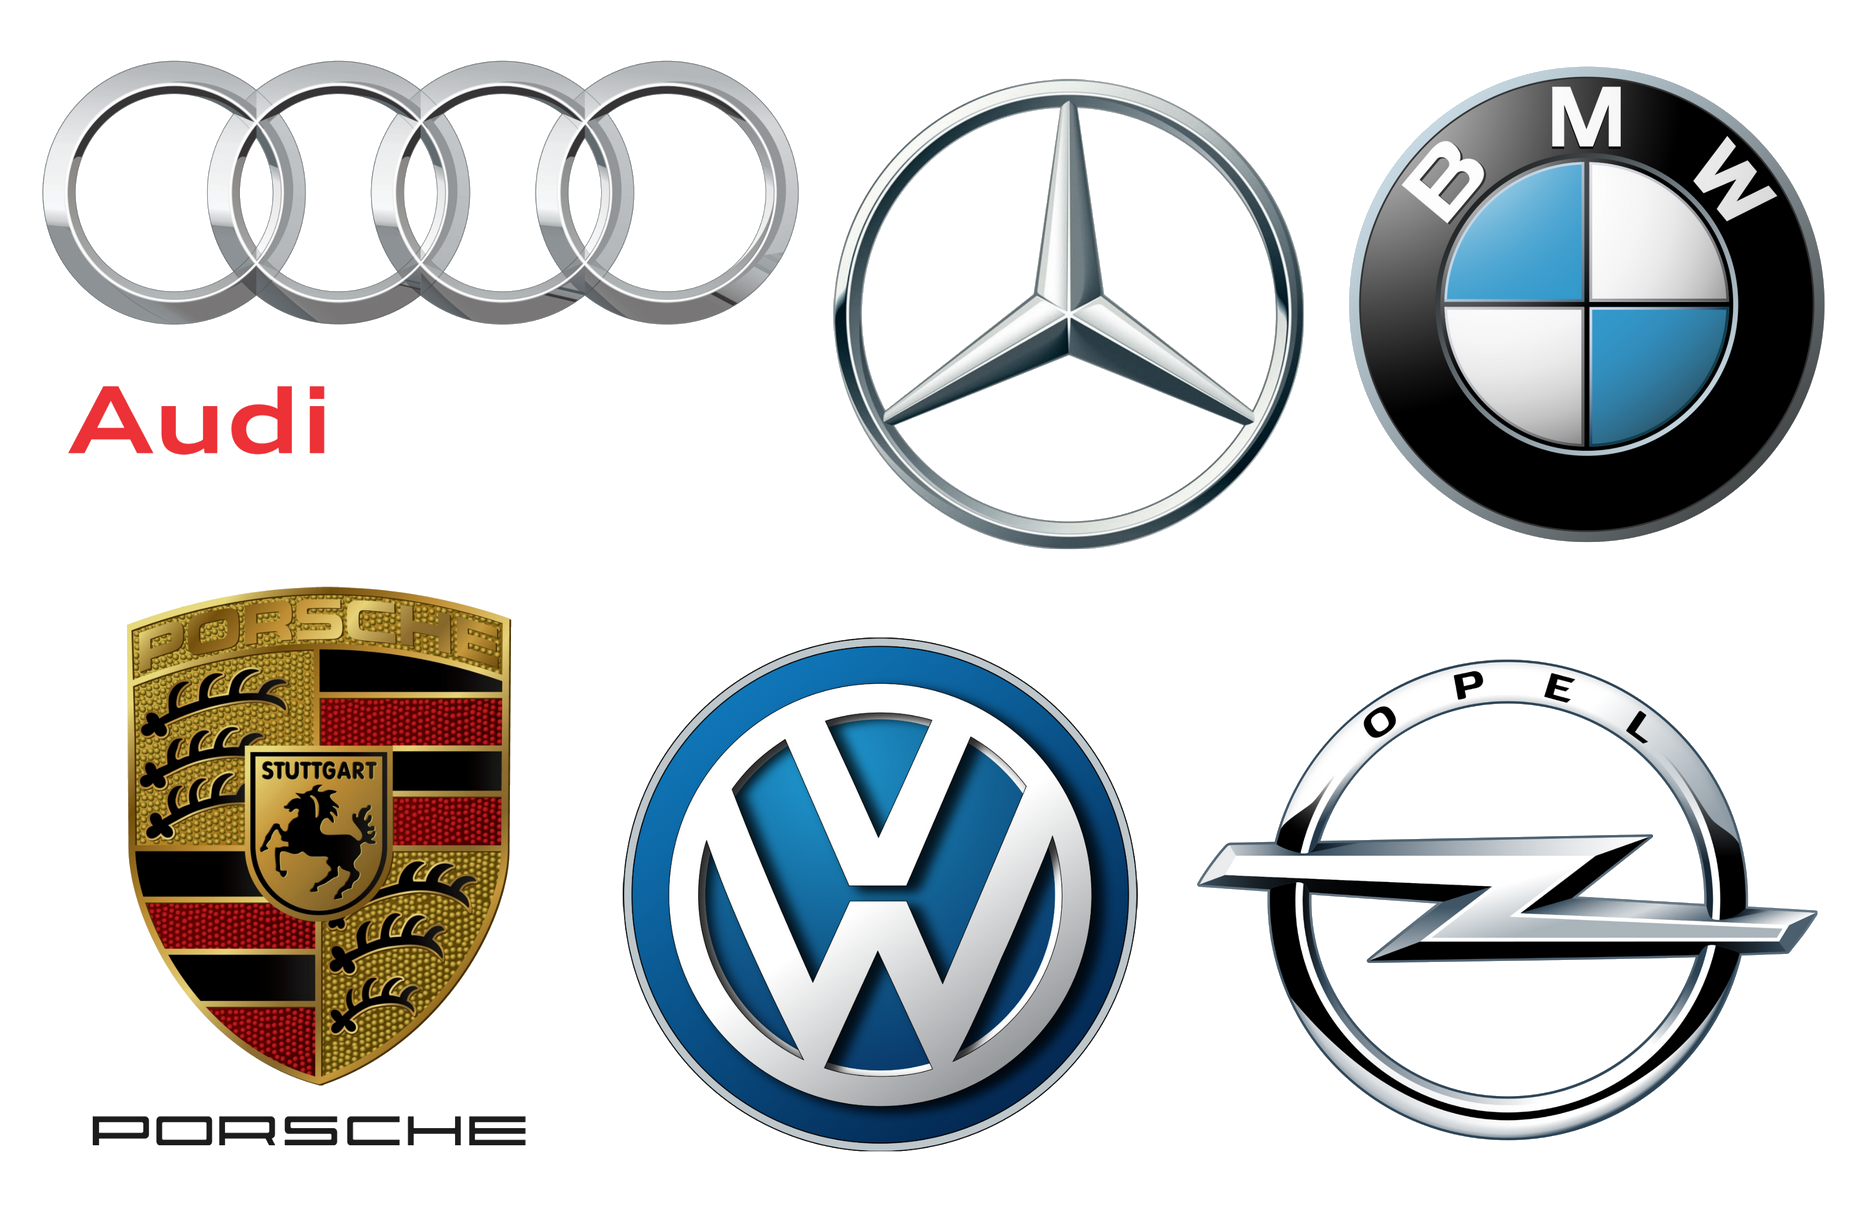 German Car Brands Companies And Manufacturers Car Brand Names Com